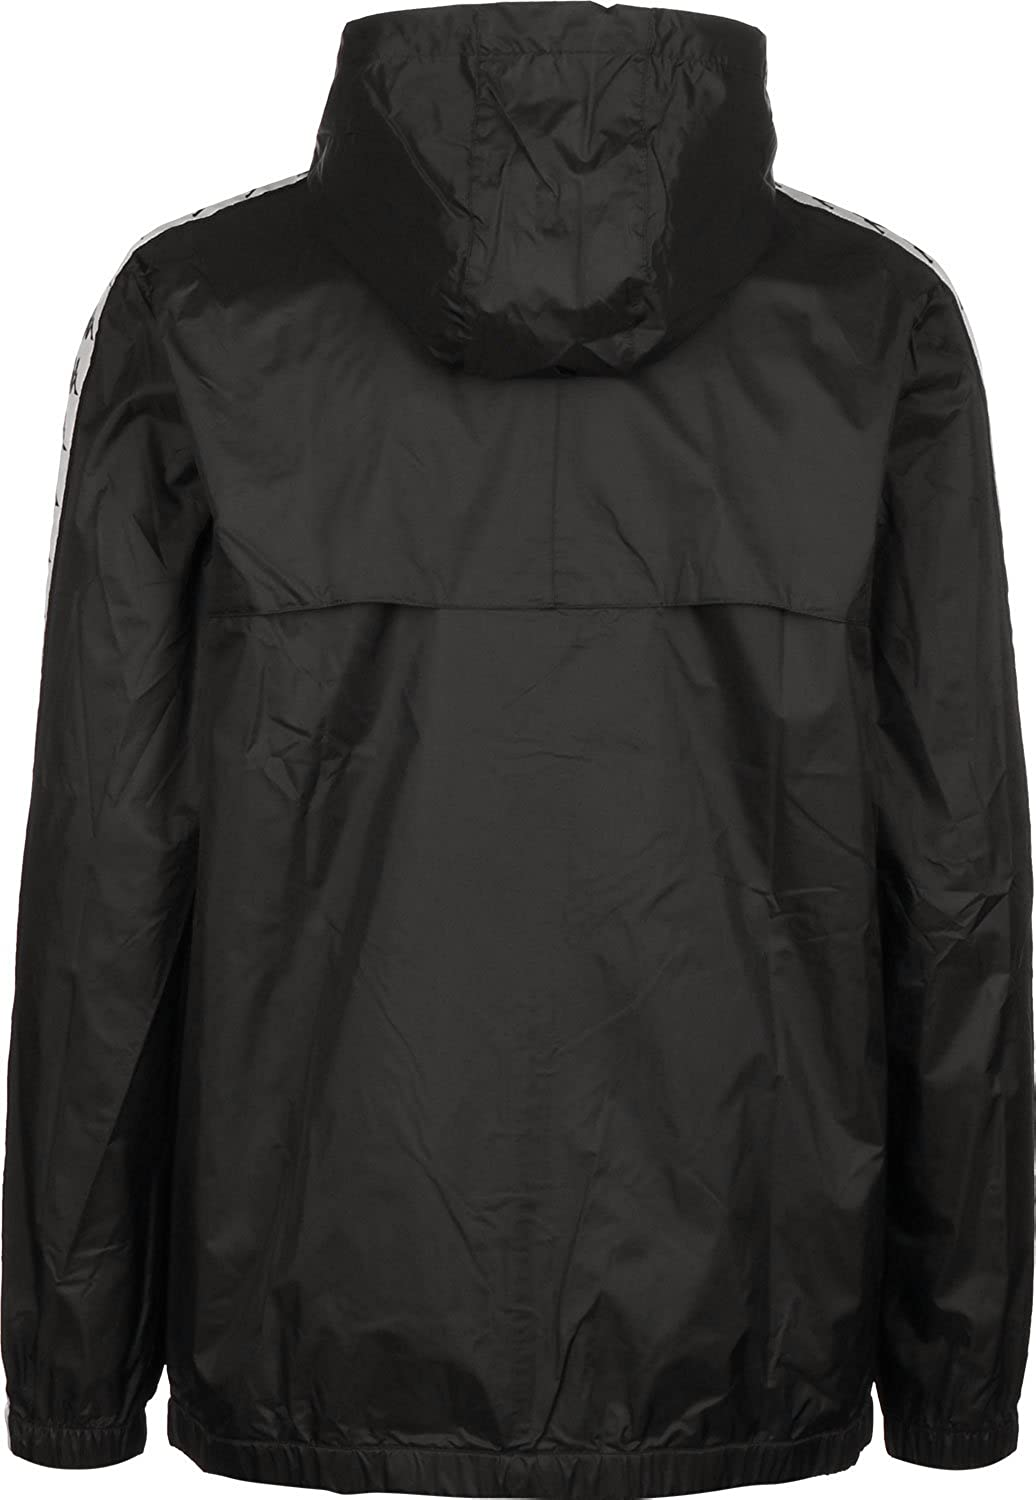 Amazon.com: Kappa Mens Clothing Hooded Jacket 303WA70 901 ...